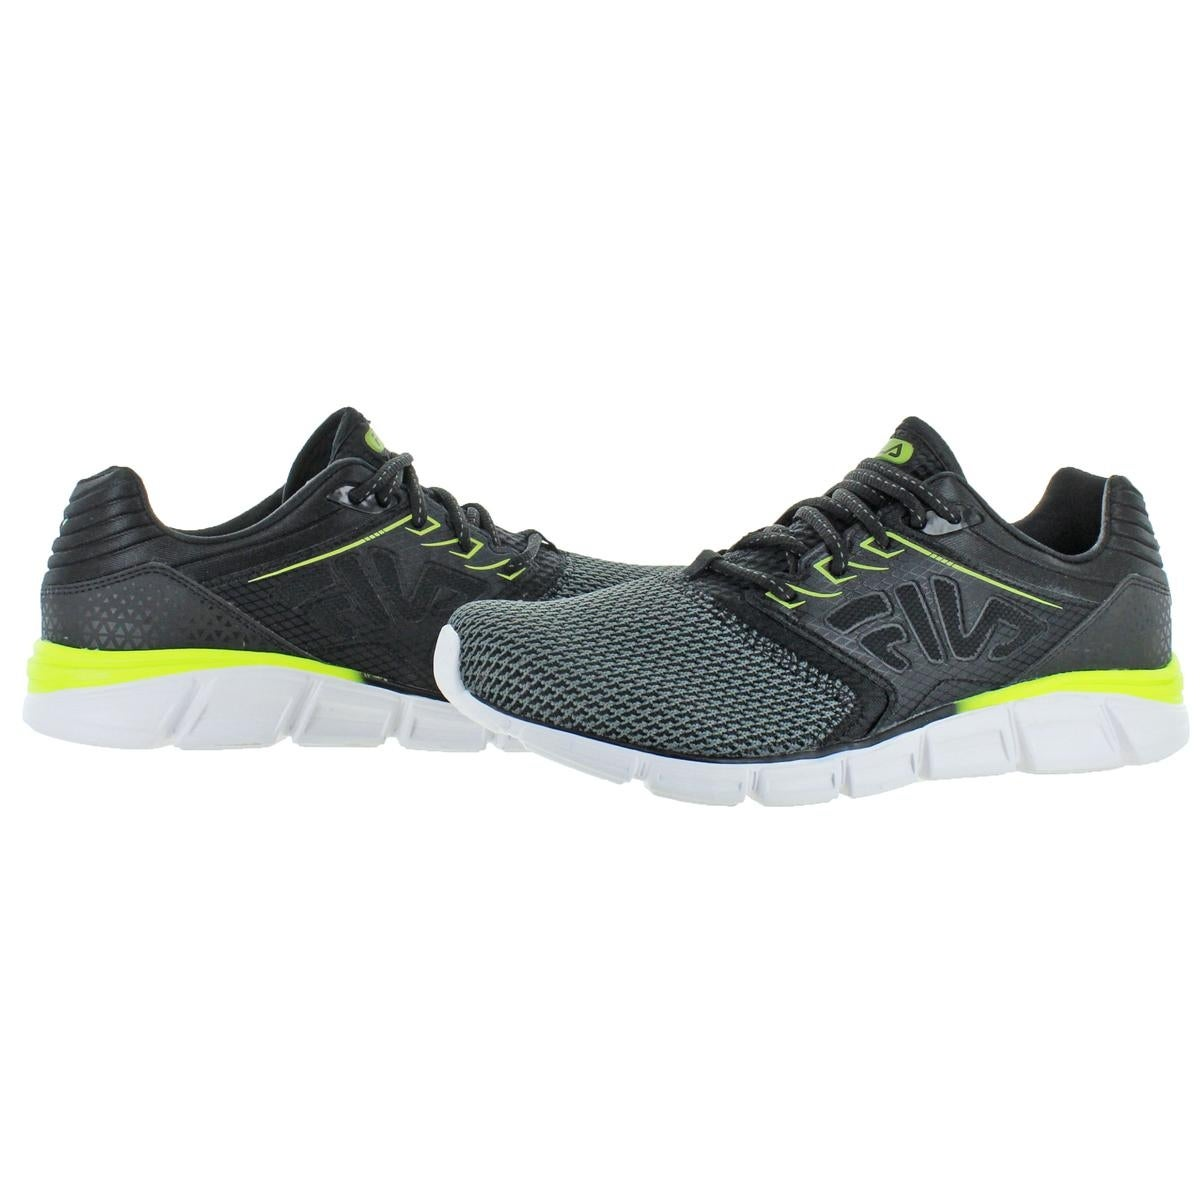 3244a9667c1e Shop Fila Mens Memory Multiswift 2 Running Shoes Cool Max Memory Foam - 9.5  medium (d) - Free Shipping On Orders Over  45 - Overstock - 25614452